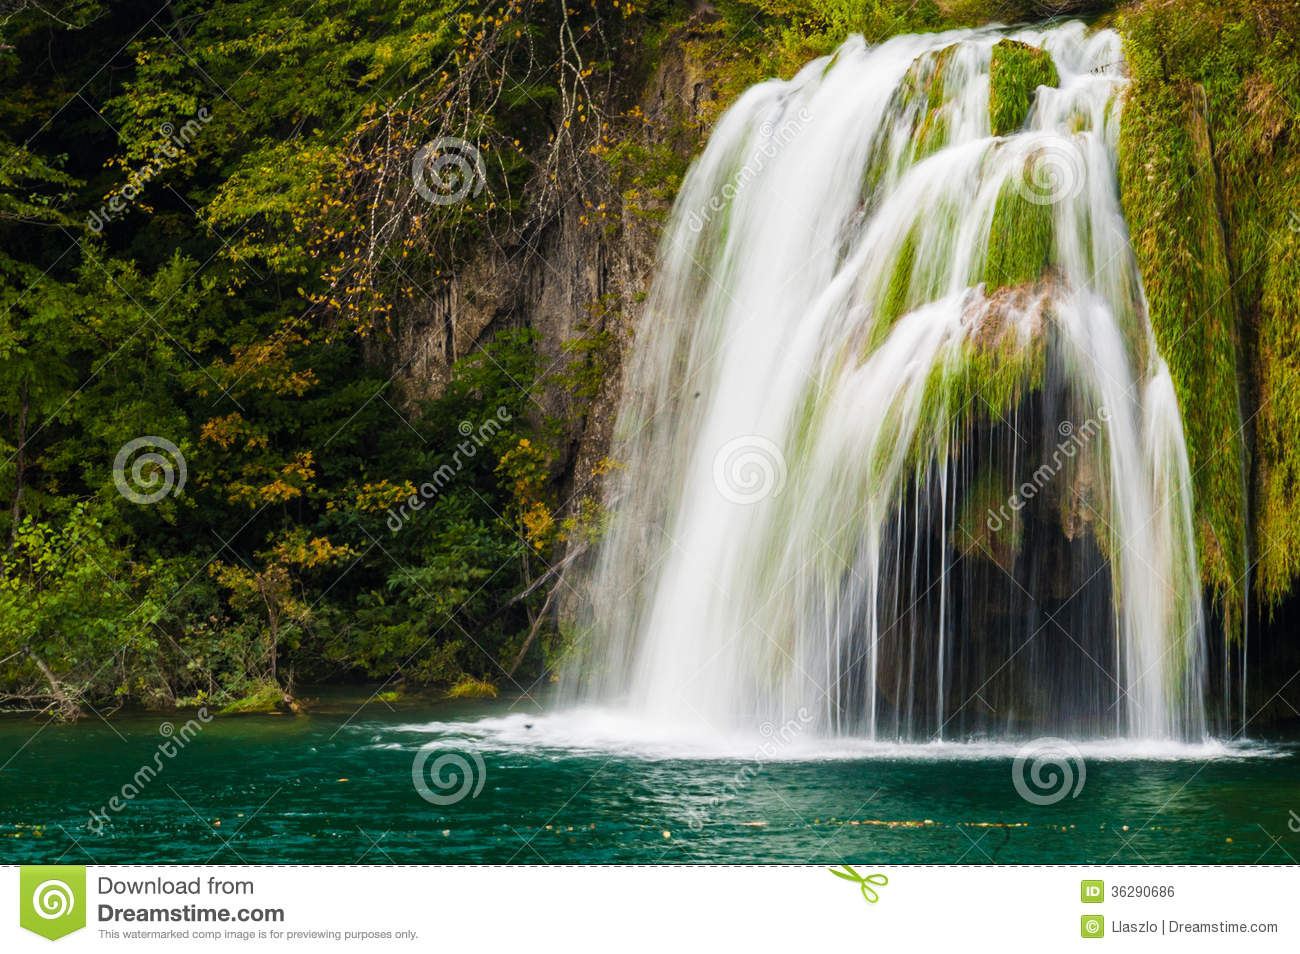 Cascading Waterfall Royalty Free Stock Image - Image: 36290686